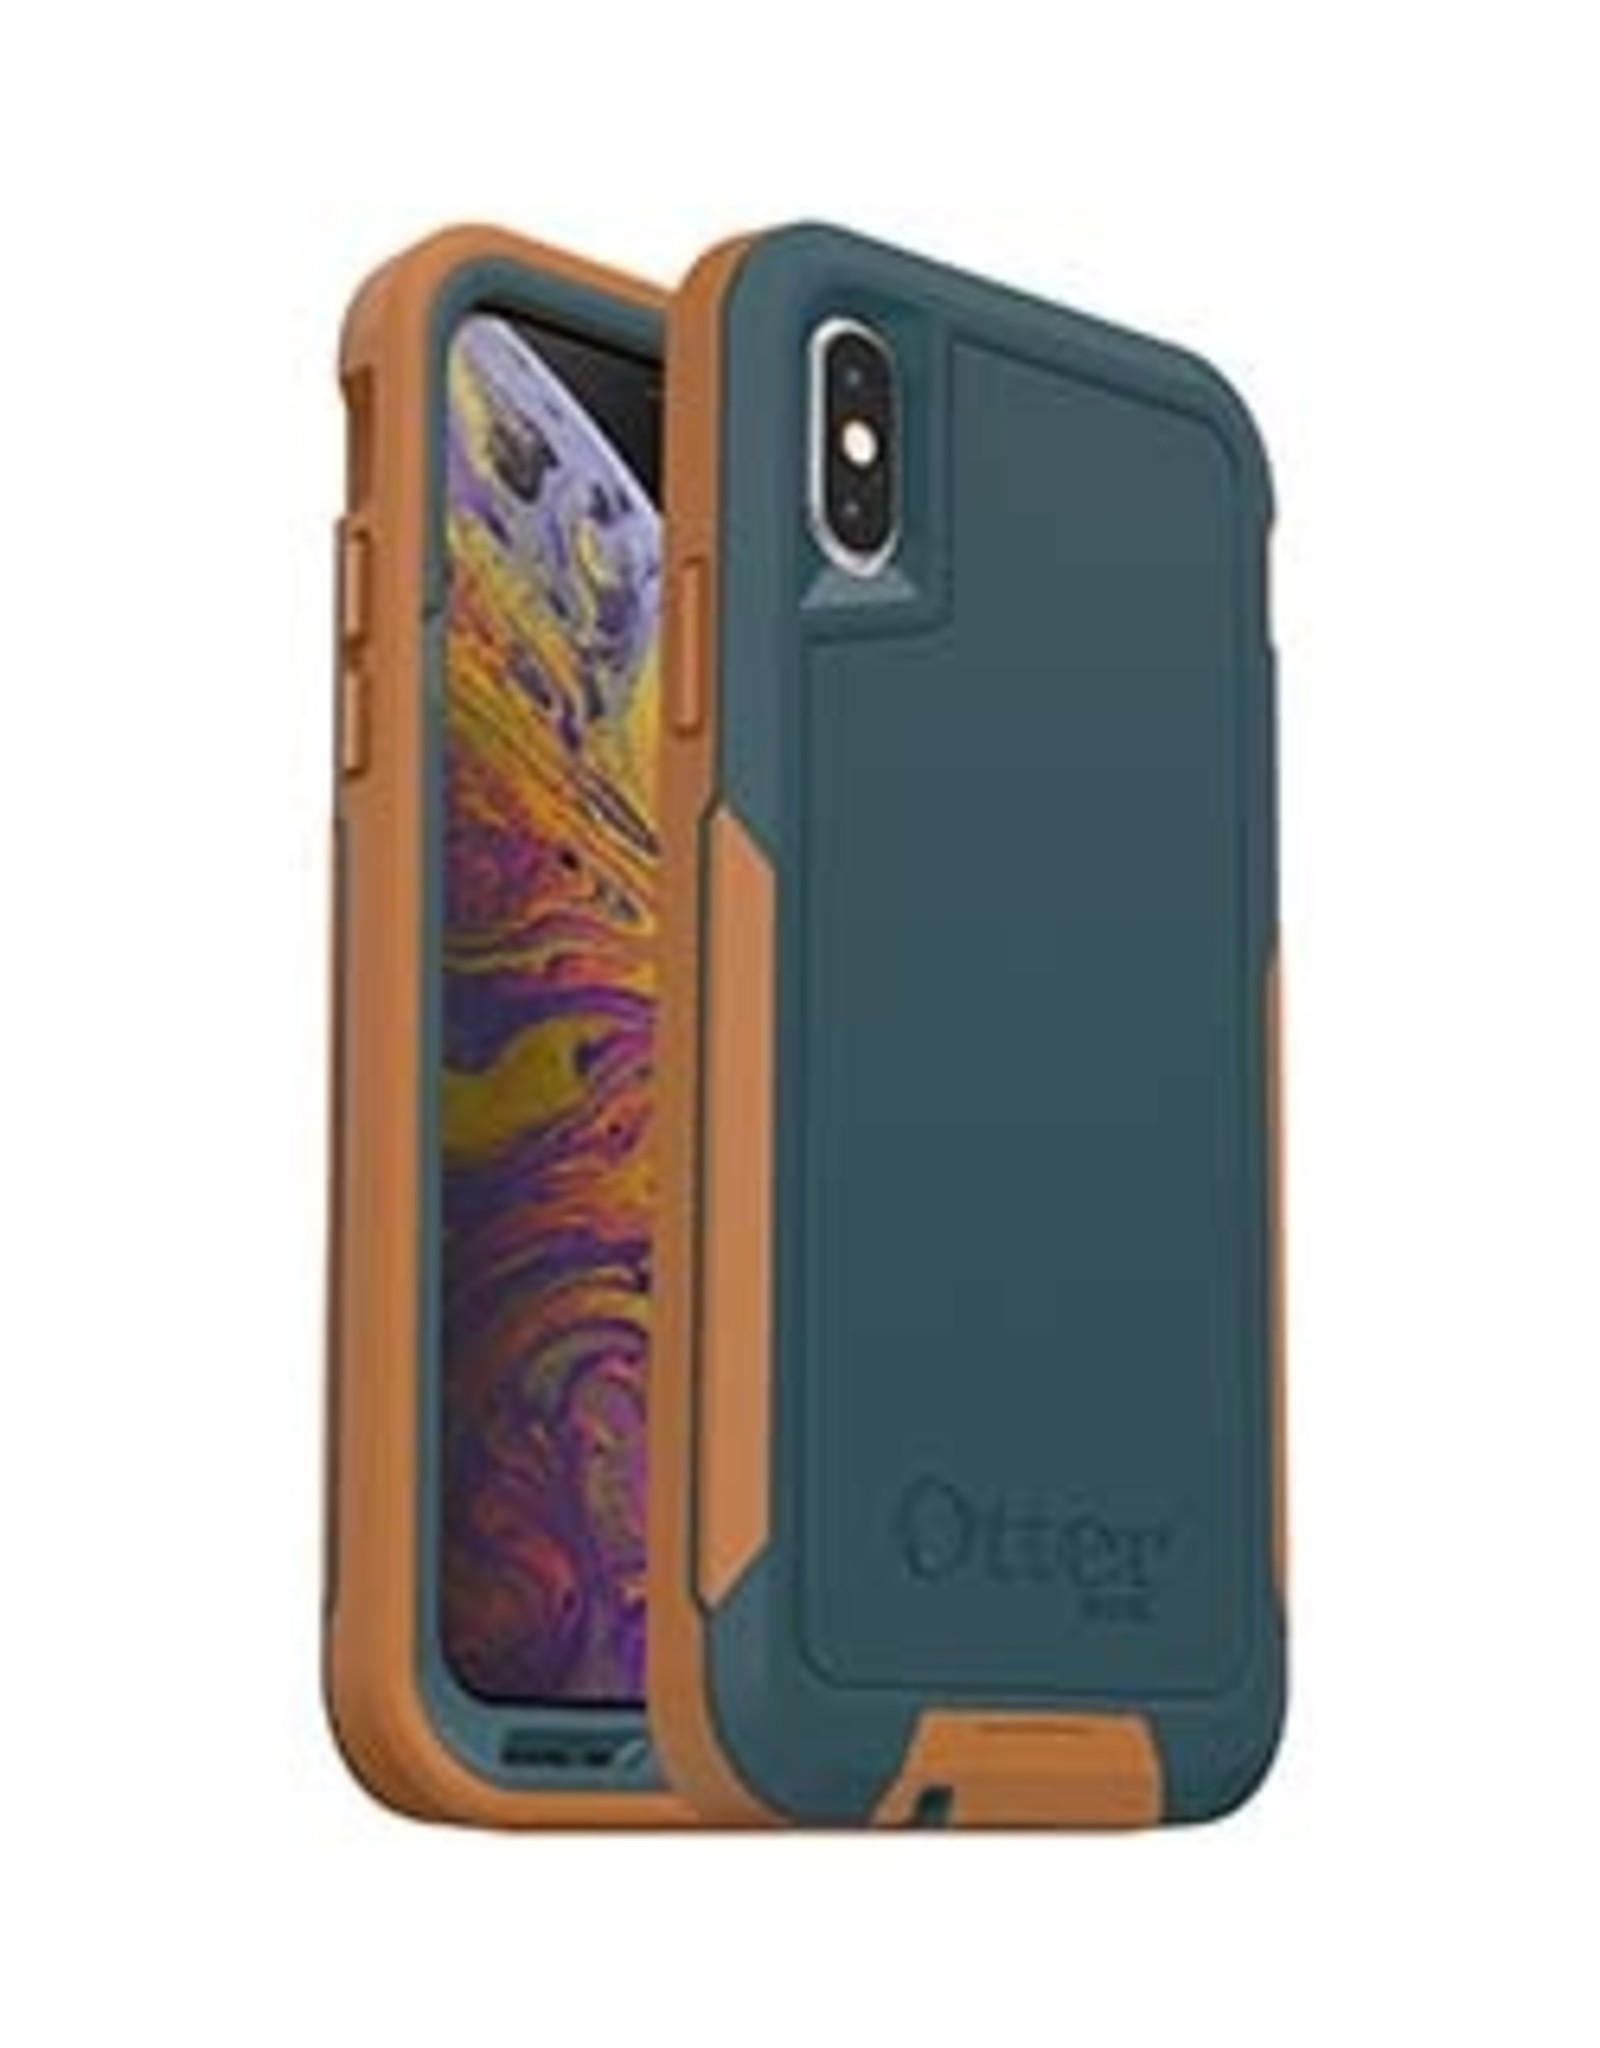 Otterbox iPhone X/Xs OtterBox Navy/Tan (Desert Spring) Pursuit Series case 15-02402